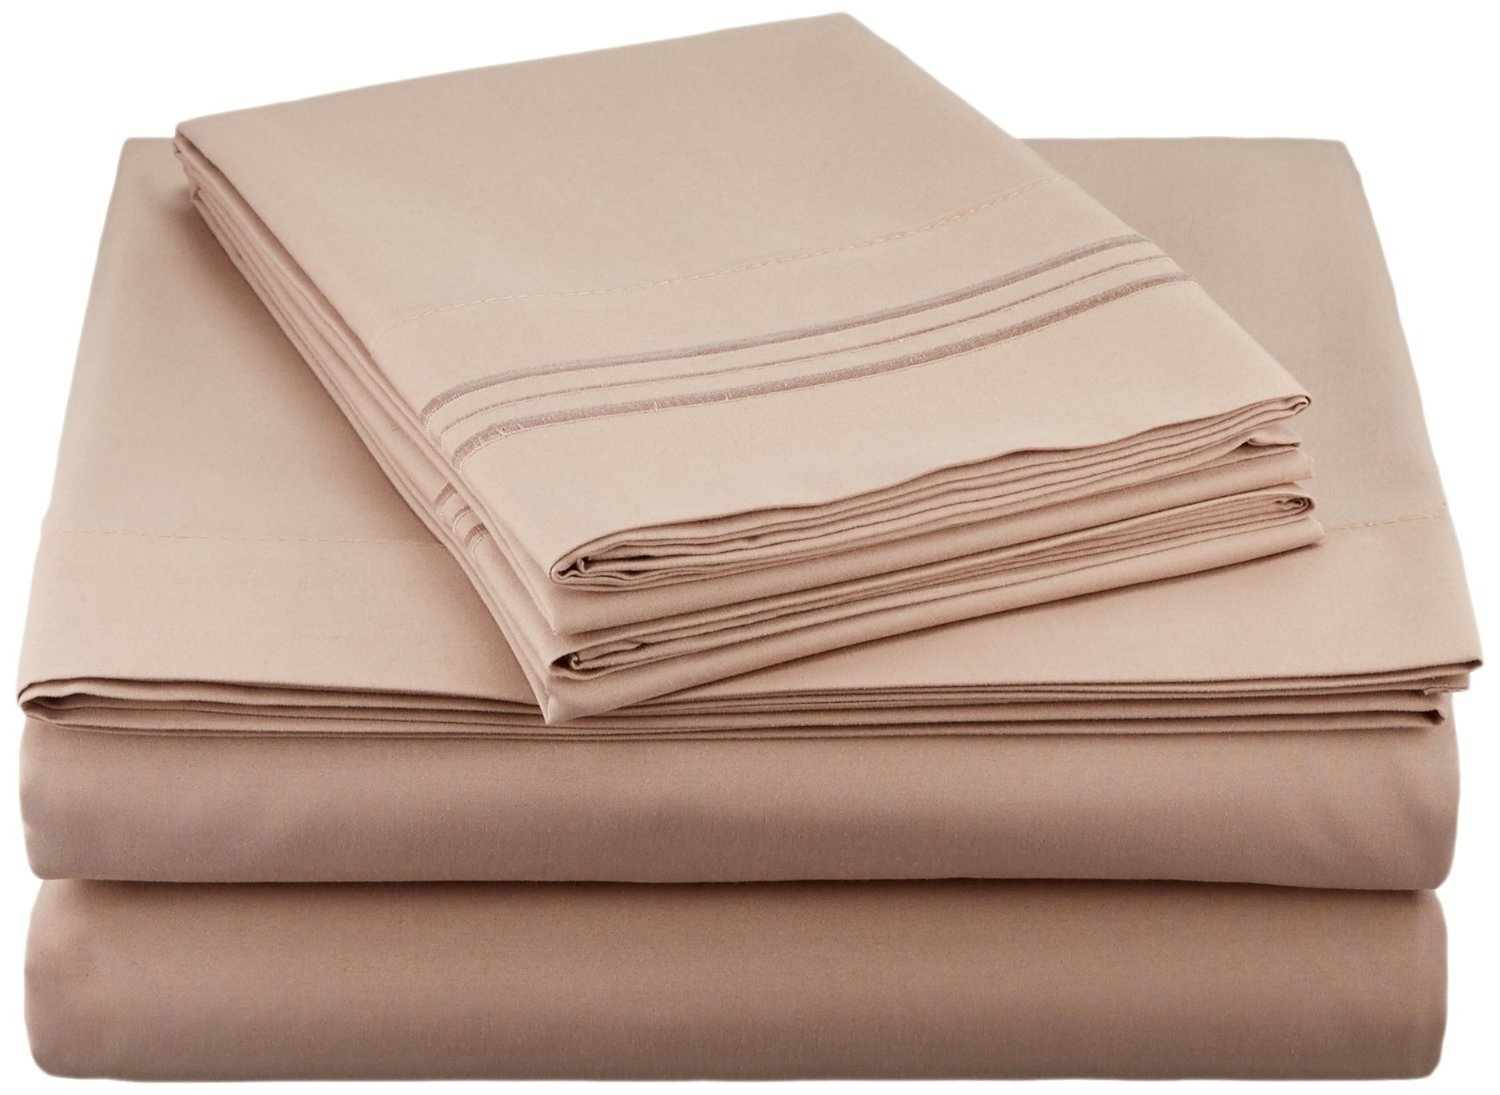 Clara Clark Premier 1800 Series 4pc Bed Sheet Set - Queen, Taupe Sand, Hypoallergenic, Deep Pocket